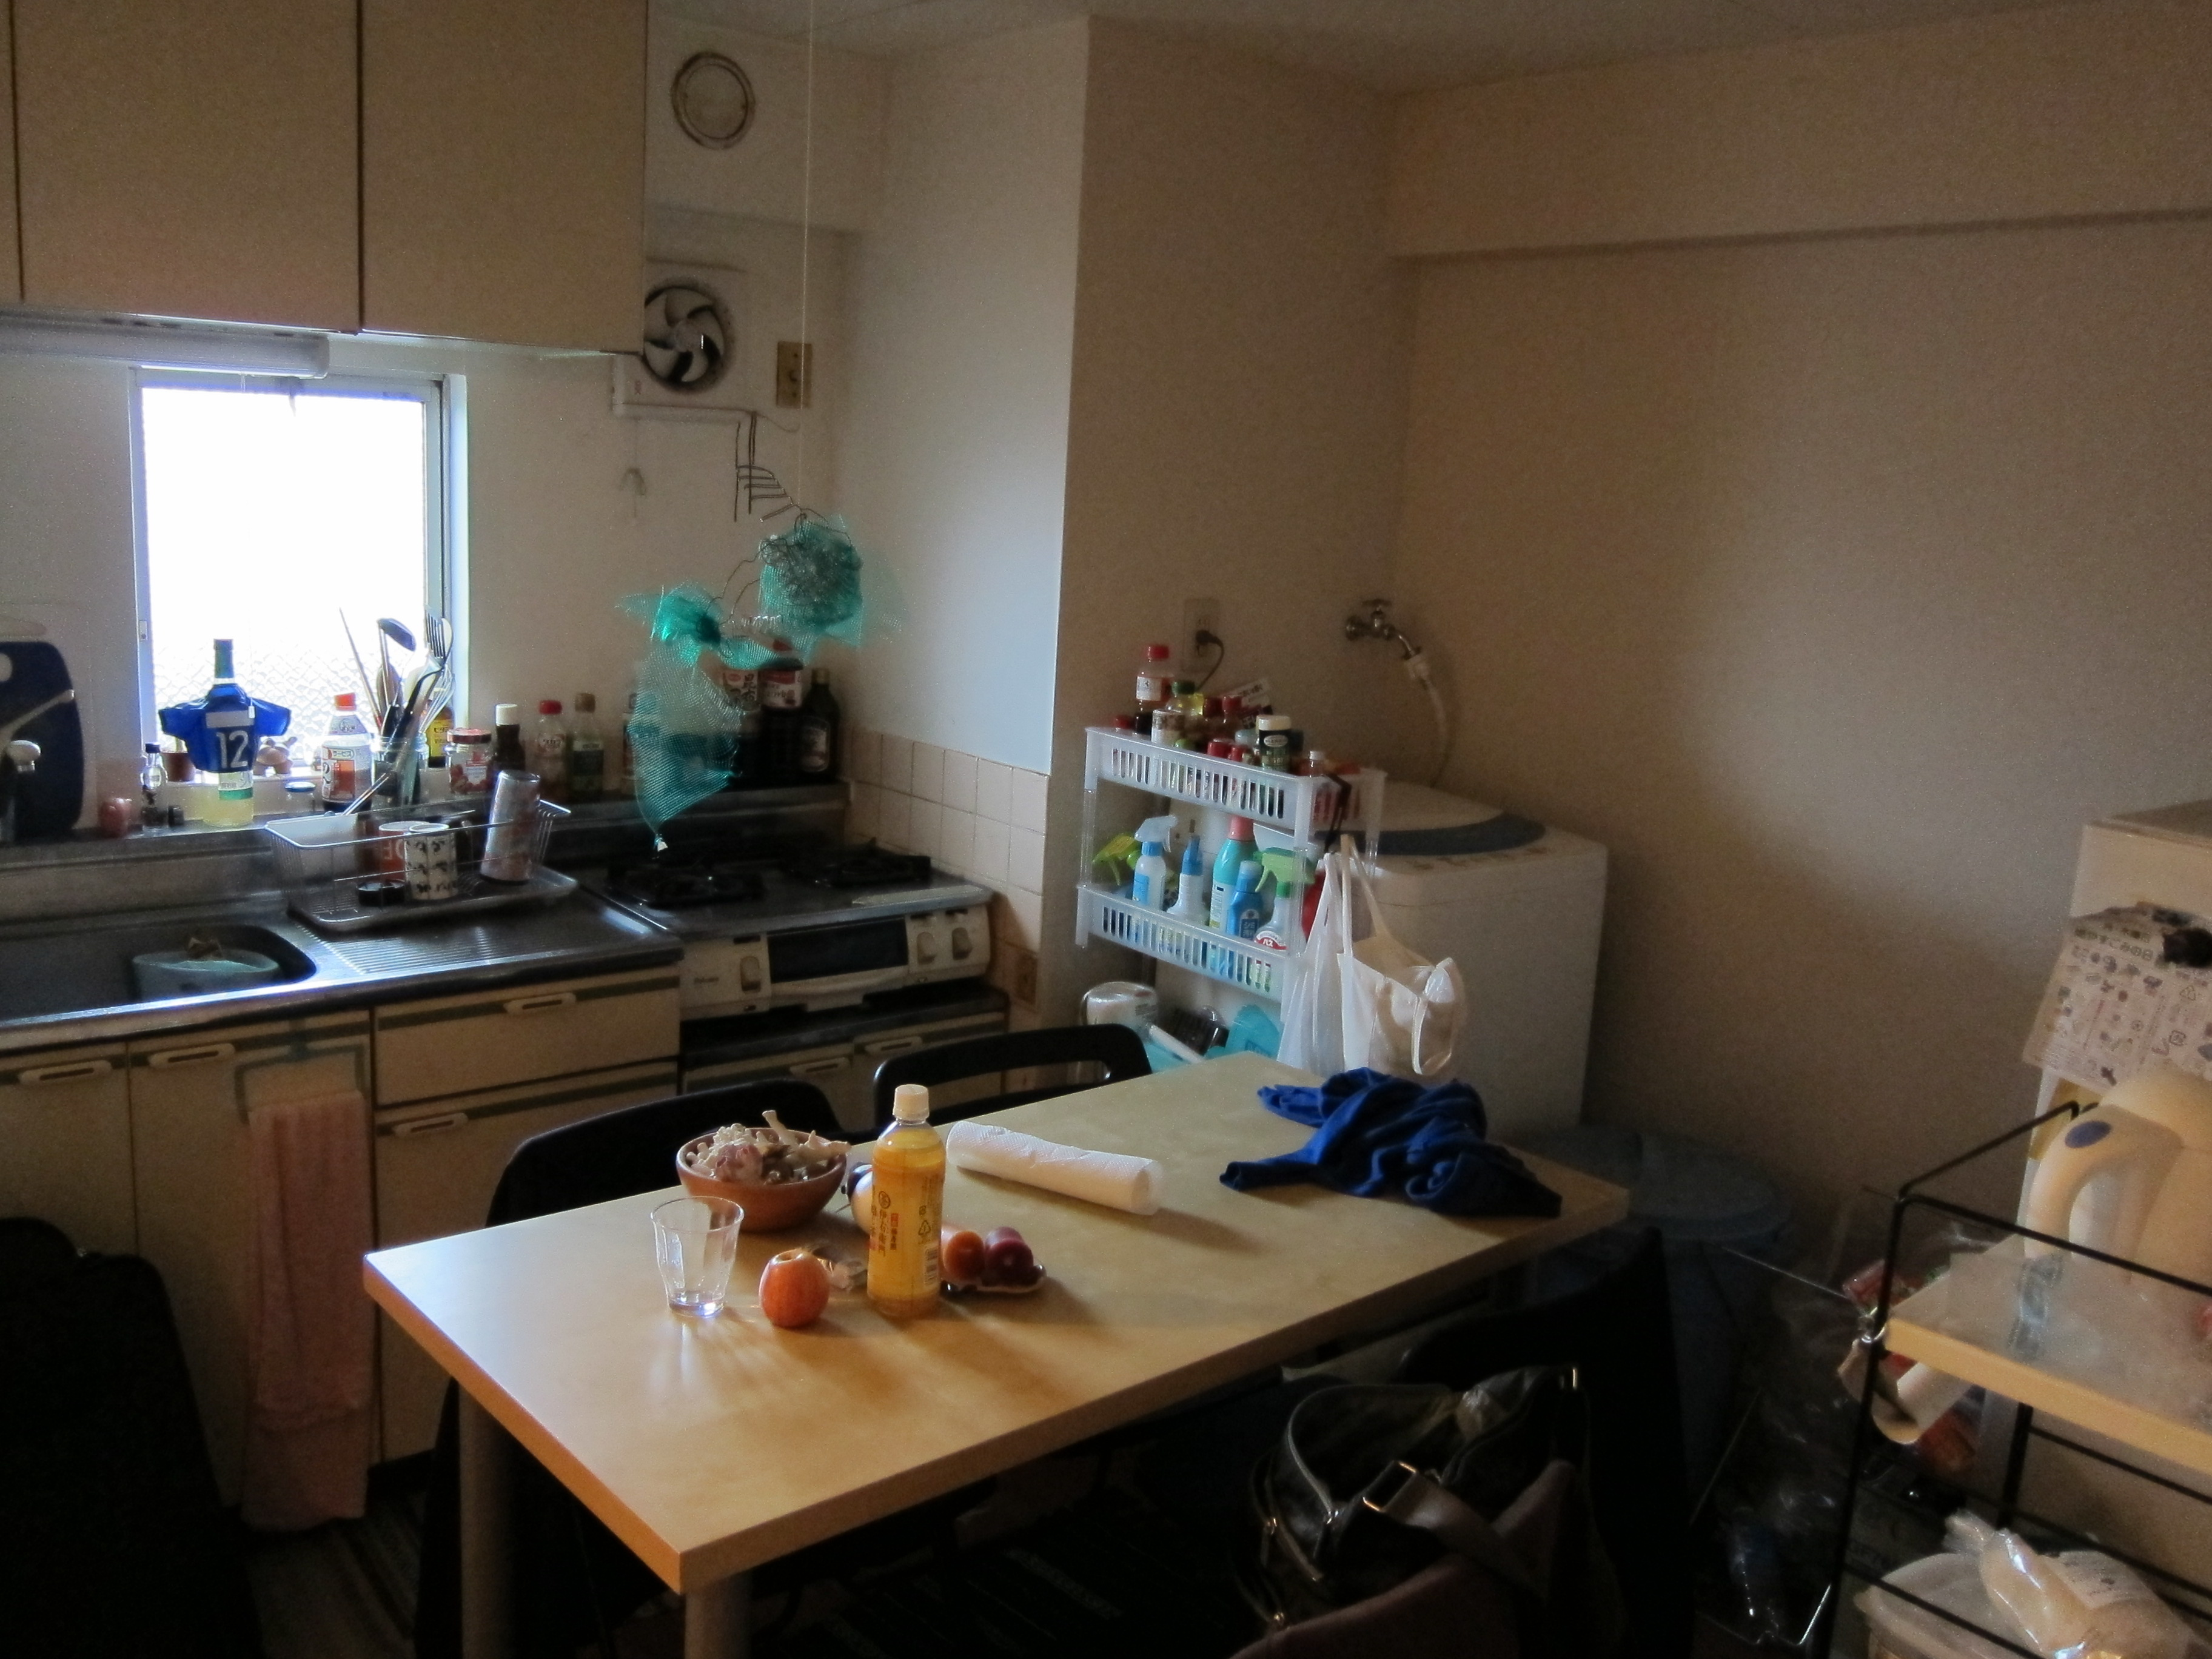 FilePrivate kitchen in Japan.jpg   Wikimedia Commons